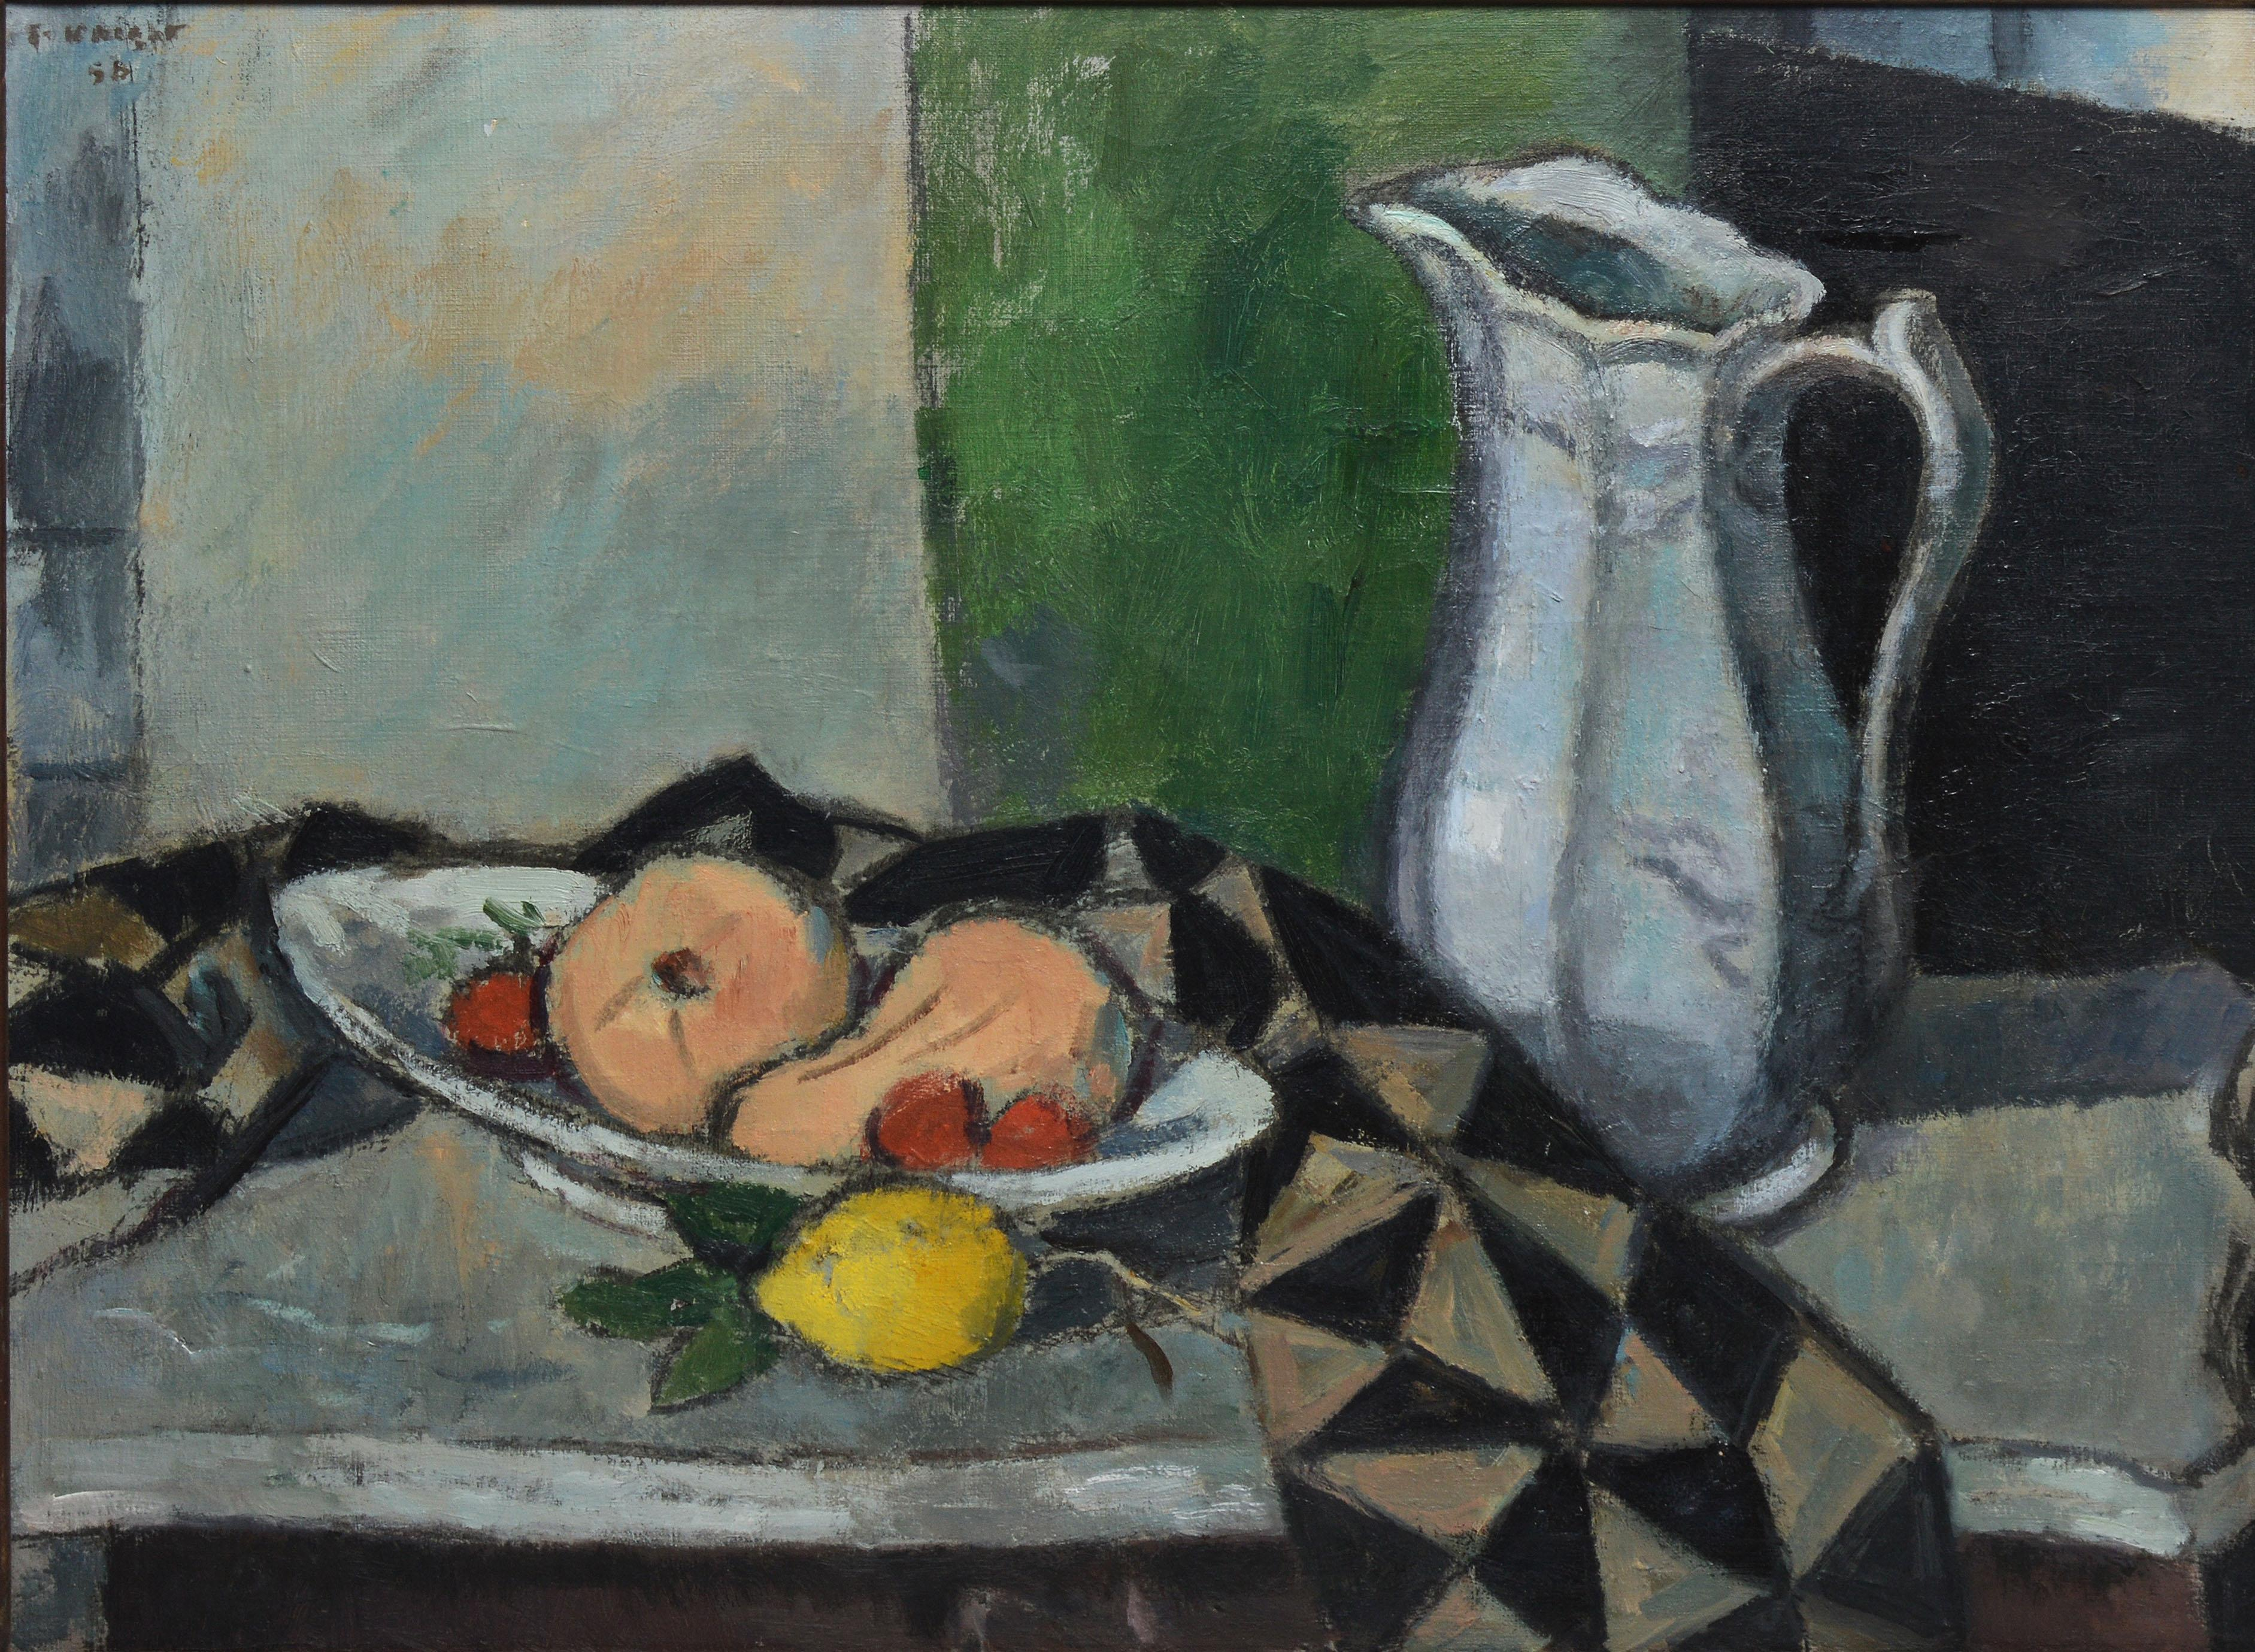 American Modernist Kitchen Still Life   Black Still Life Painting By Unknown